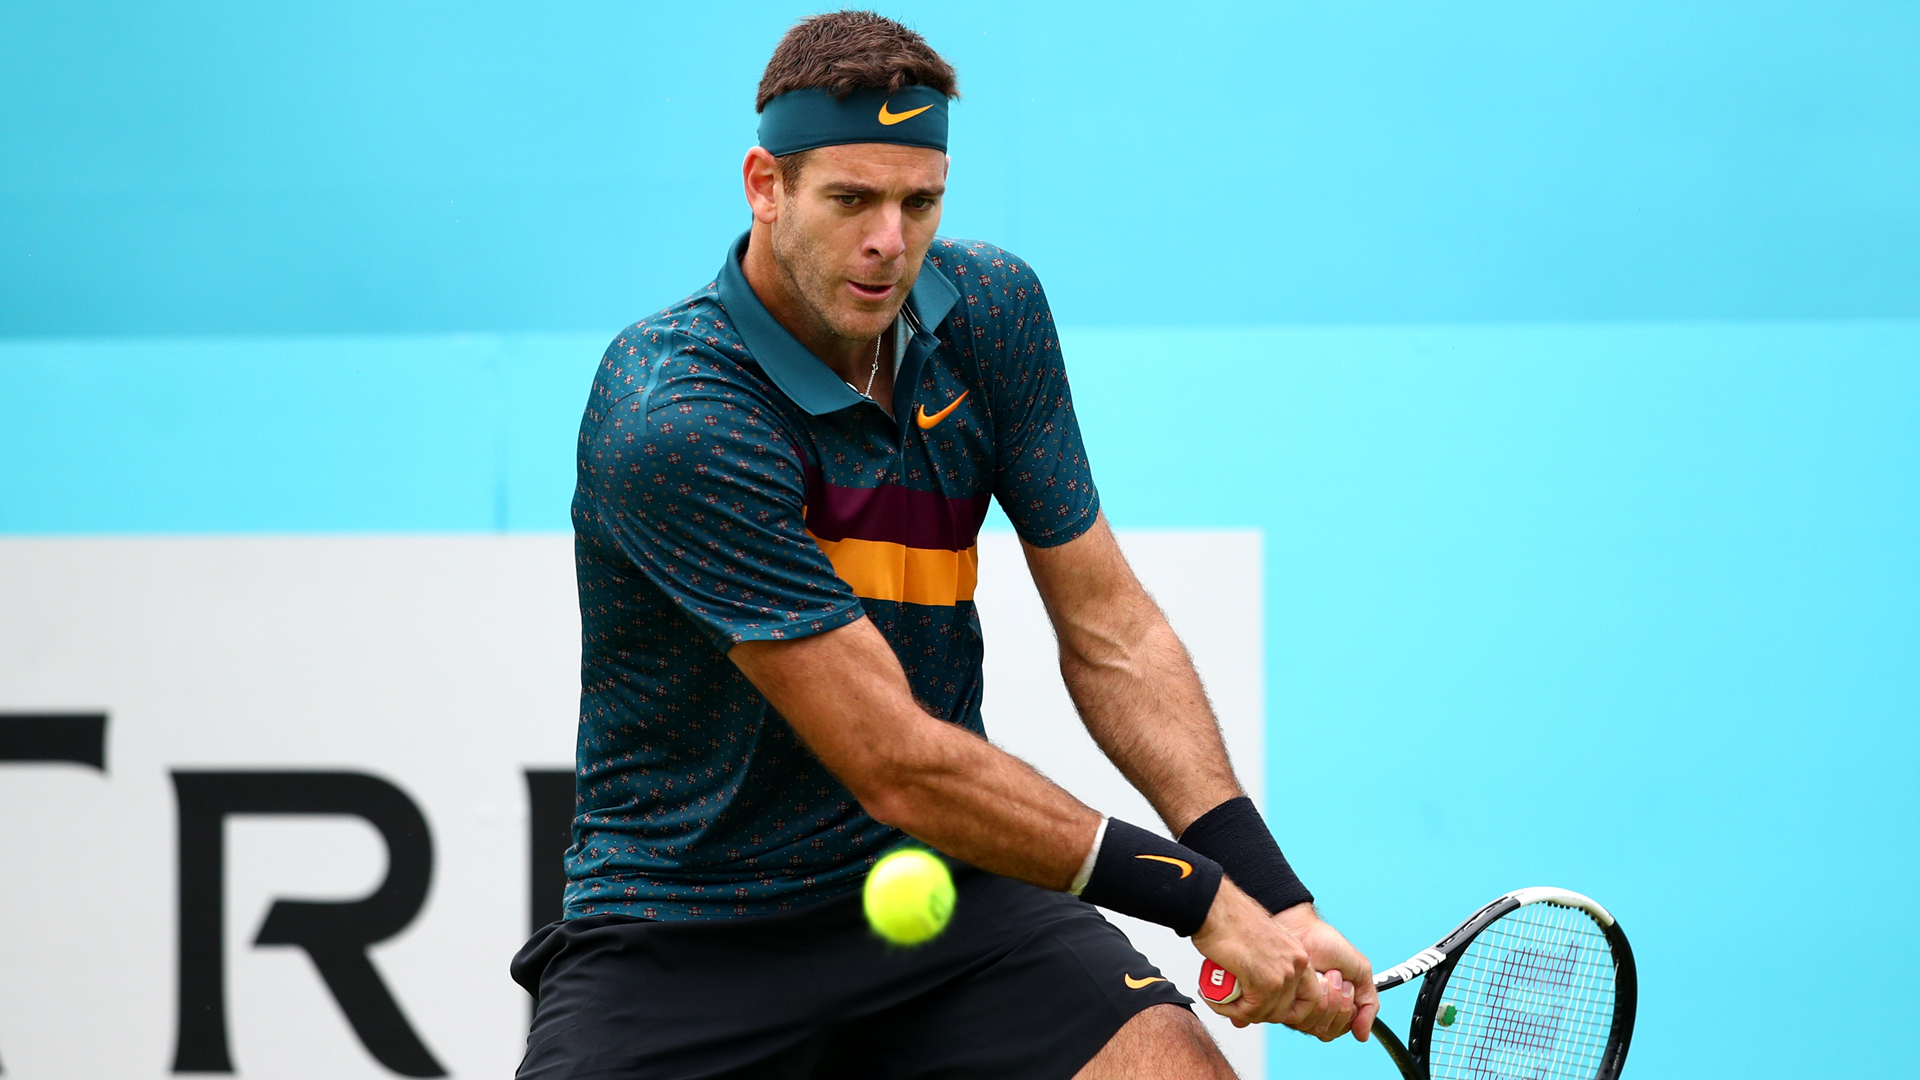 Former US Open champion Juan Martin del Potro said his recovery from knee surgery had been challenging.